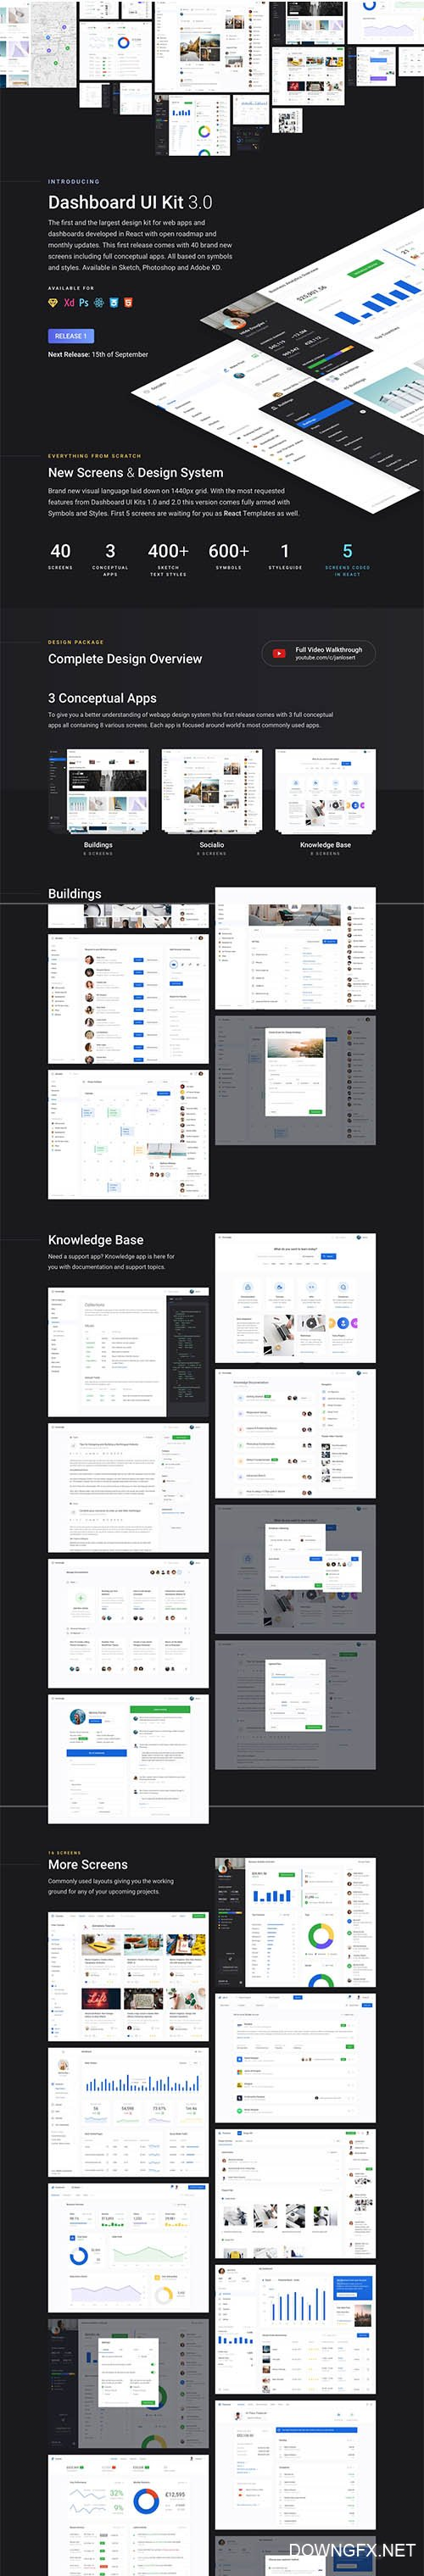 Dashboard UI Kit 3.0